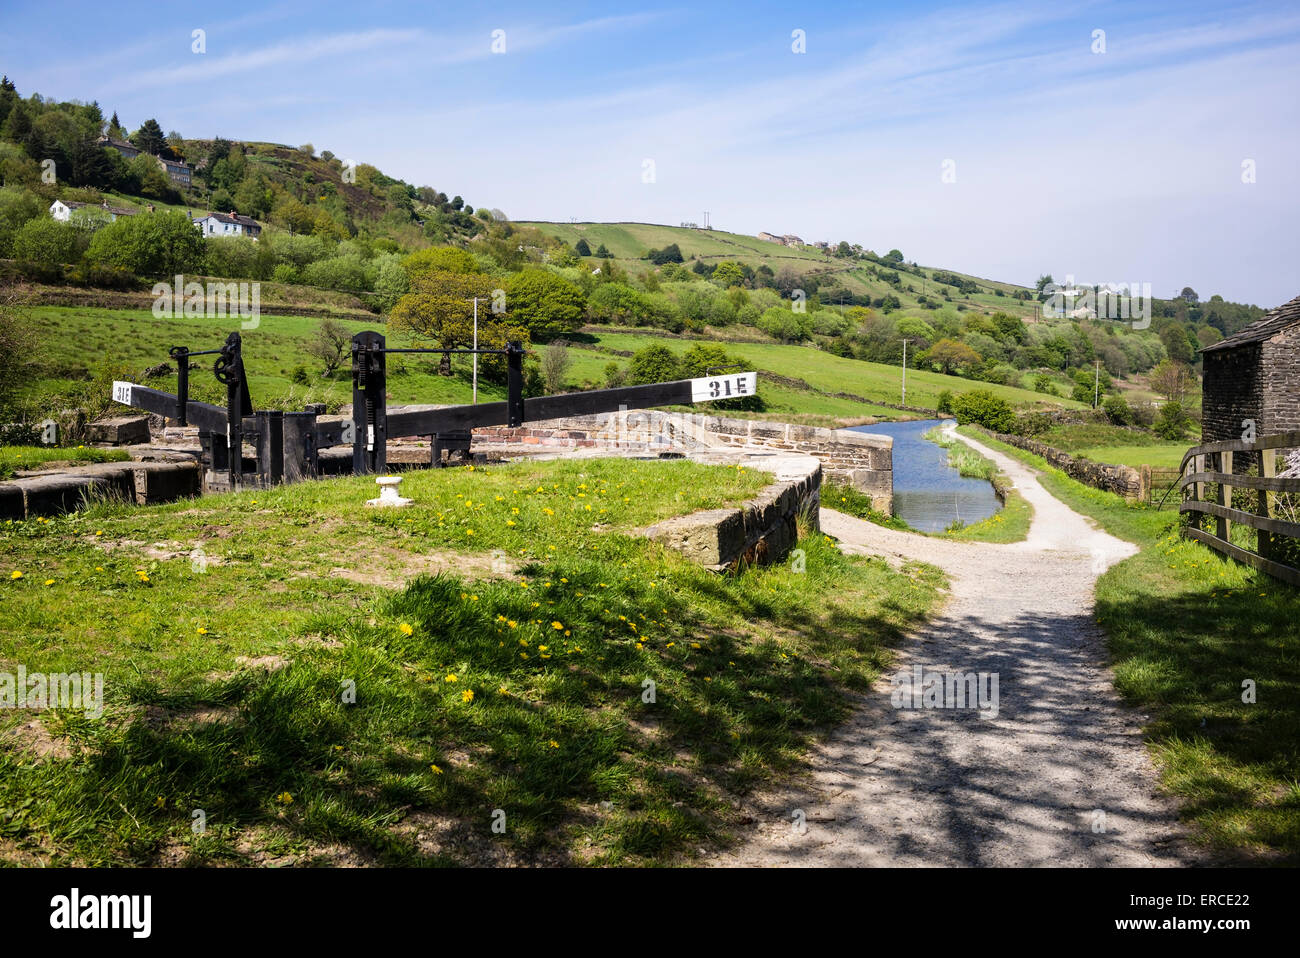 The Colne Valley beyond Booth Lock (31 E), Marsden, Yorkshire, England - Stock Image